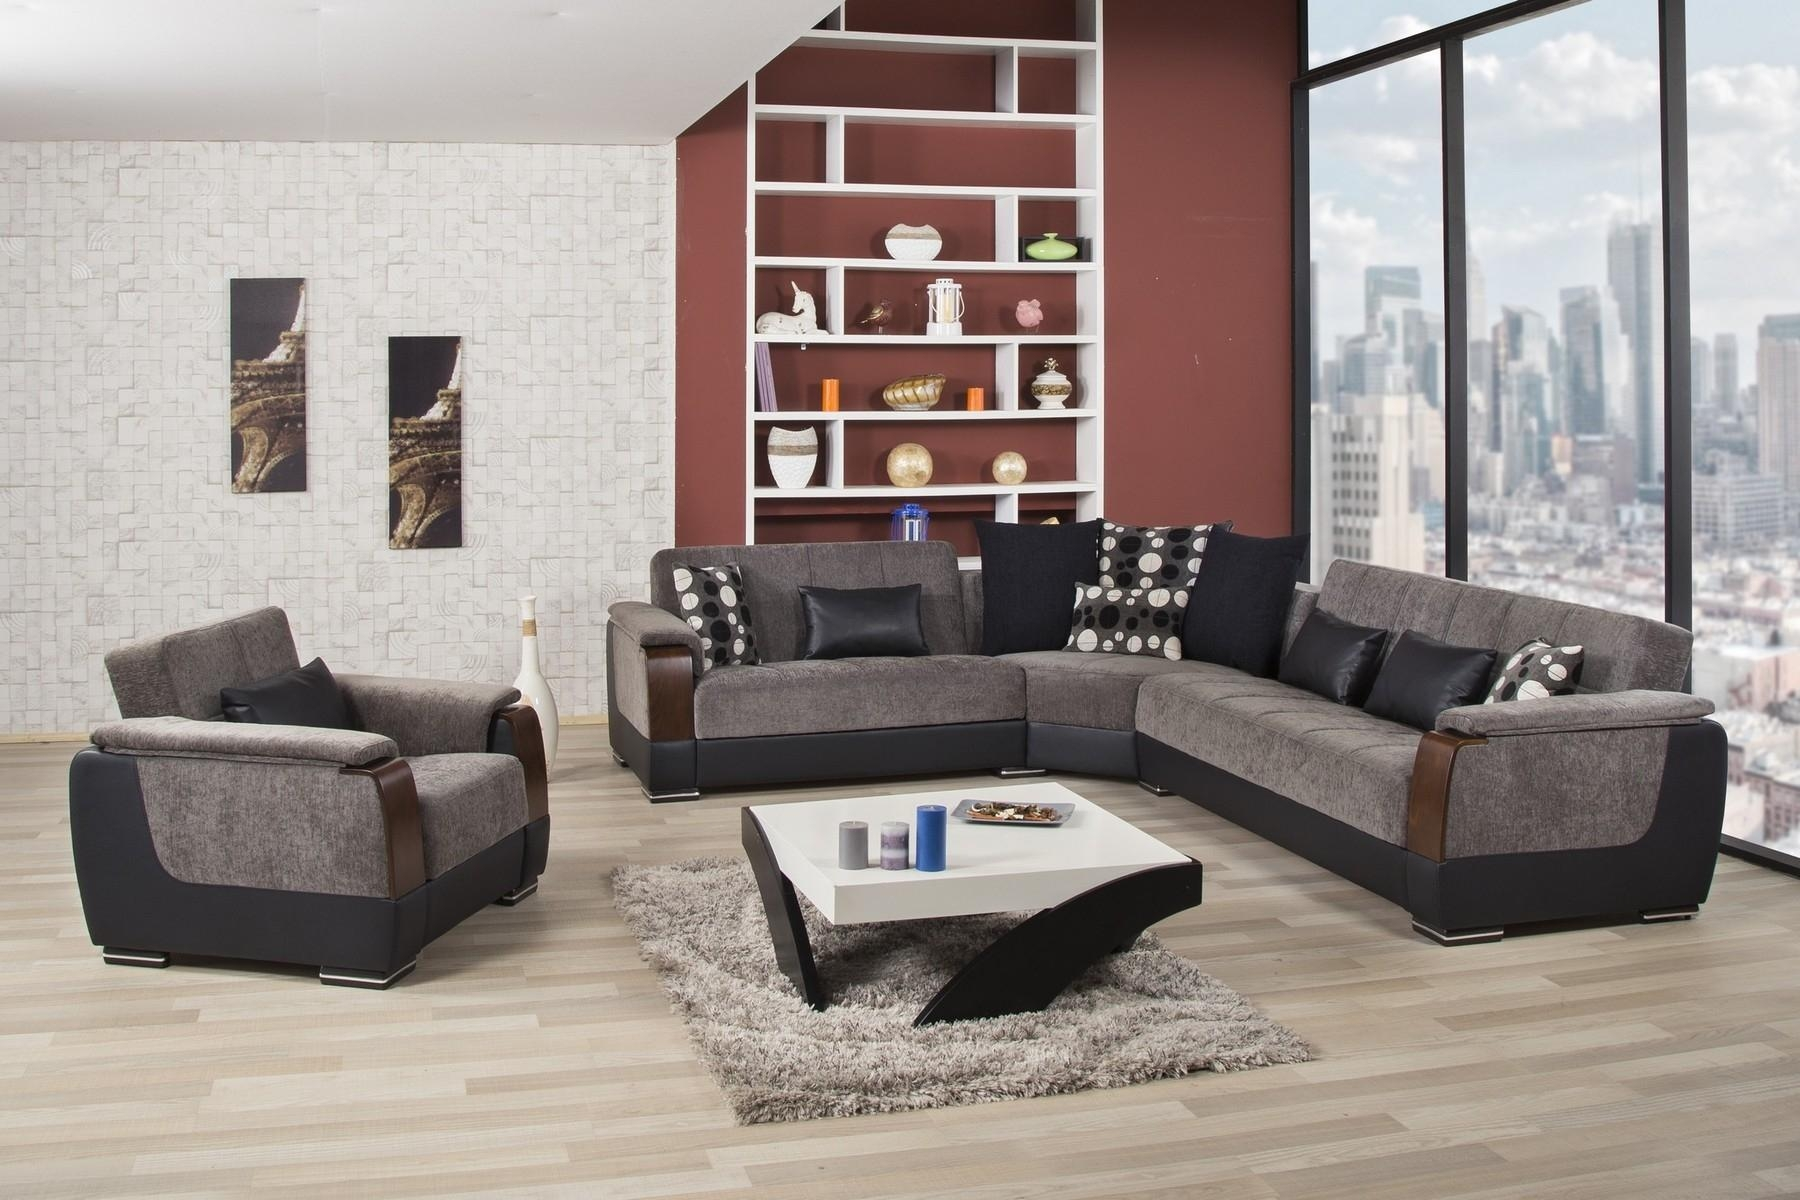 Furniture Home : Cool Modern Microfiber Sectional Sofas 28 For For Modern Microfiber Sectional Sofa (Image 6 of 20)